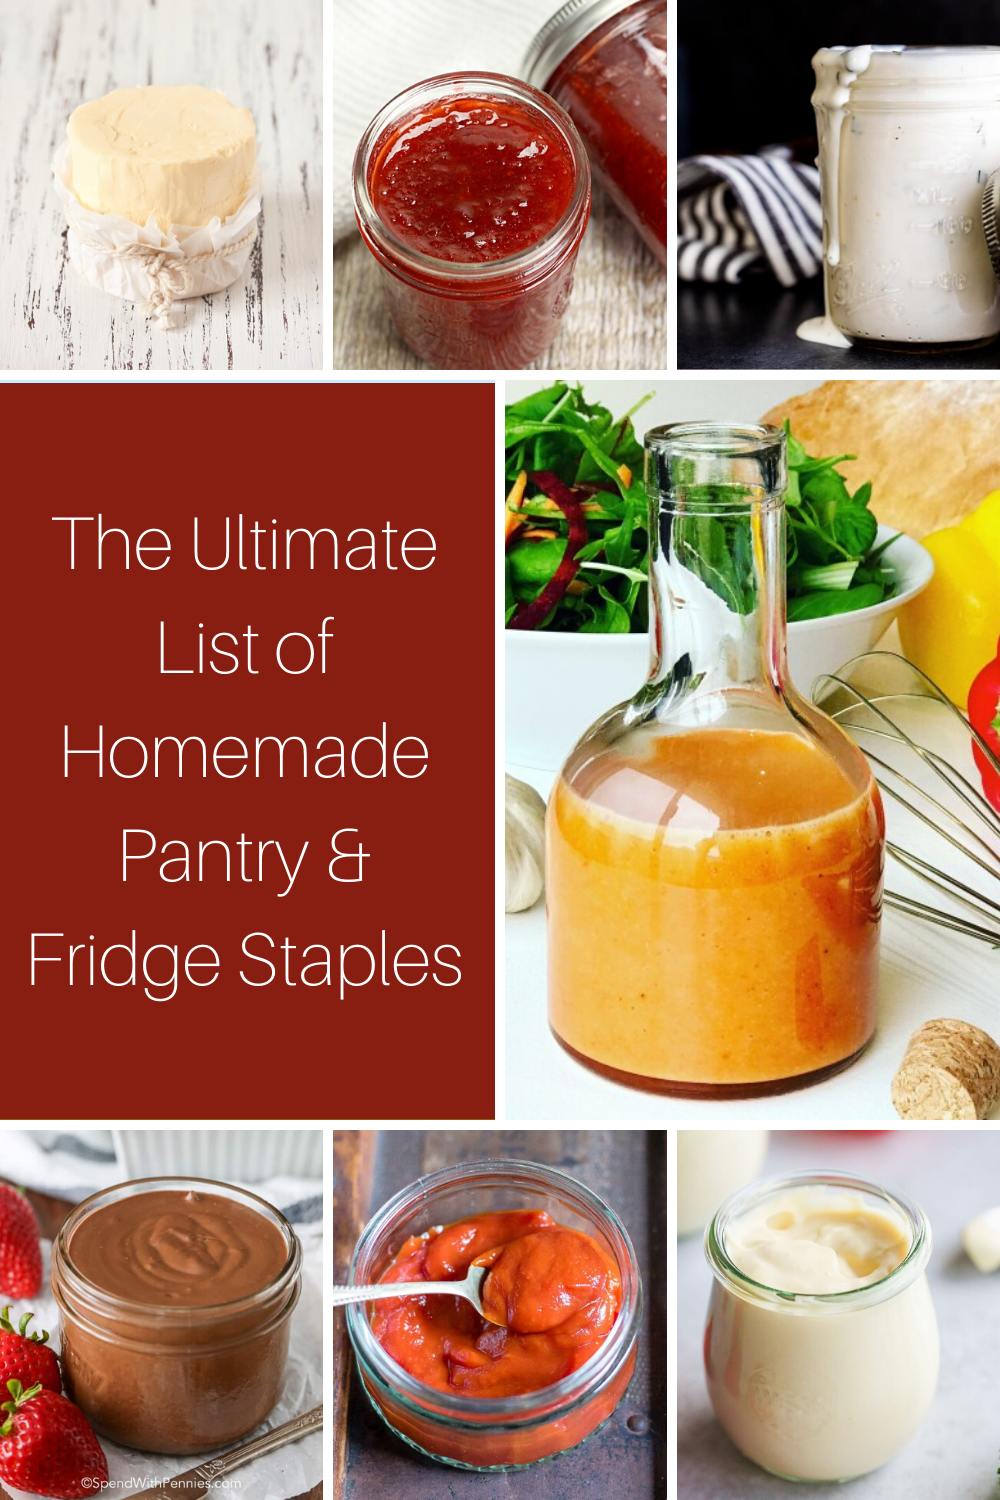 The Ultimate List of Homemade Pantry and Fridge Staples